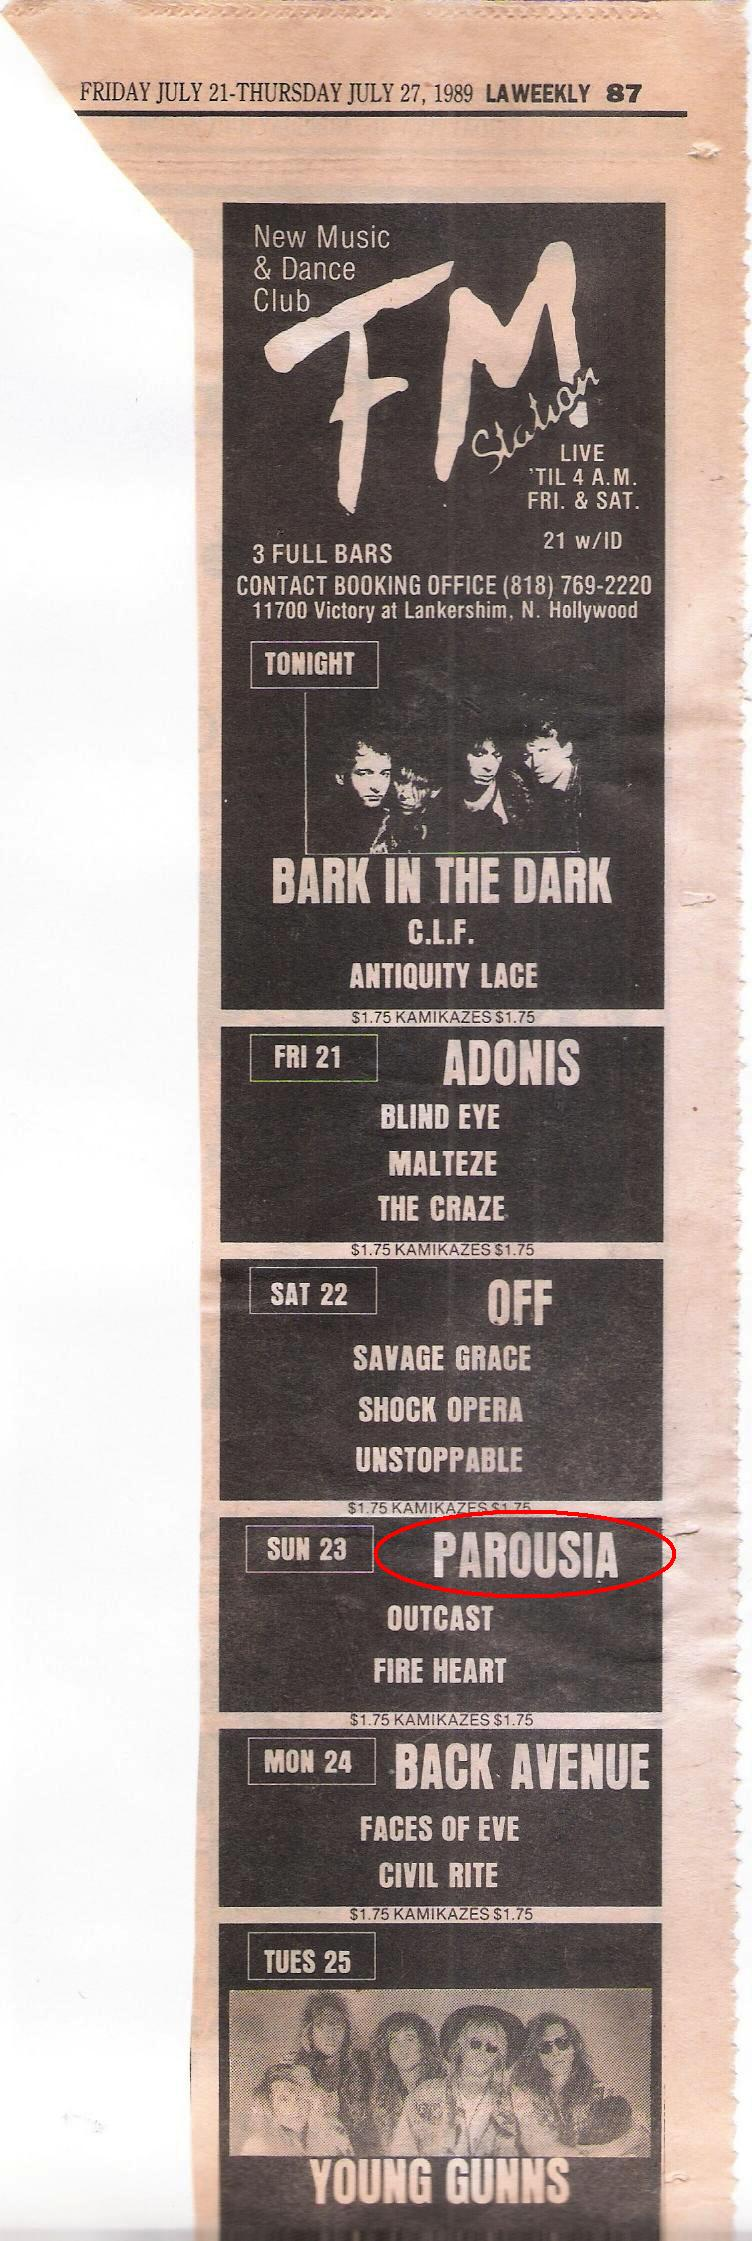 L.A. Weekly Music section, July 20-25, 1989